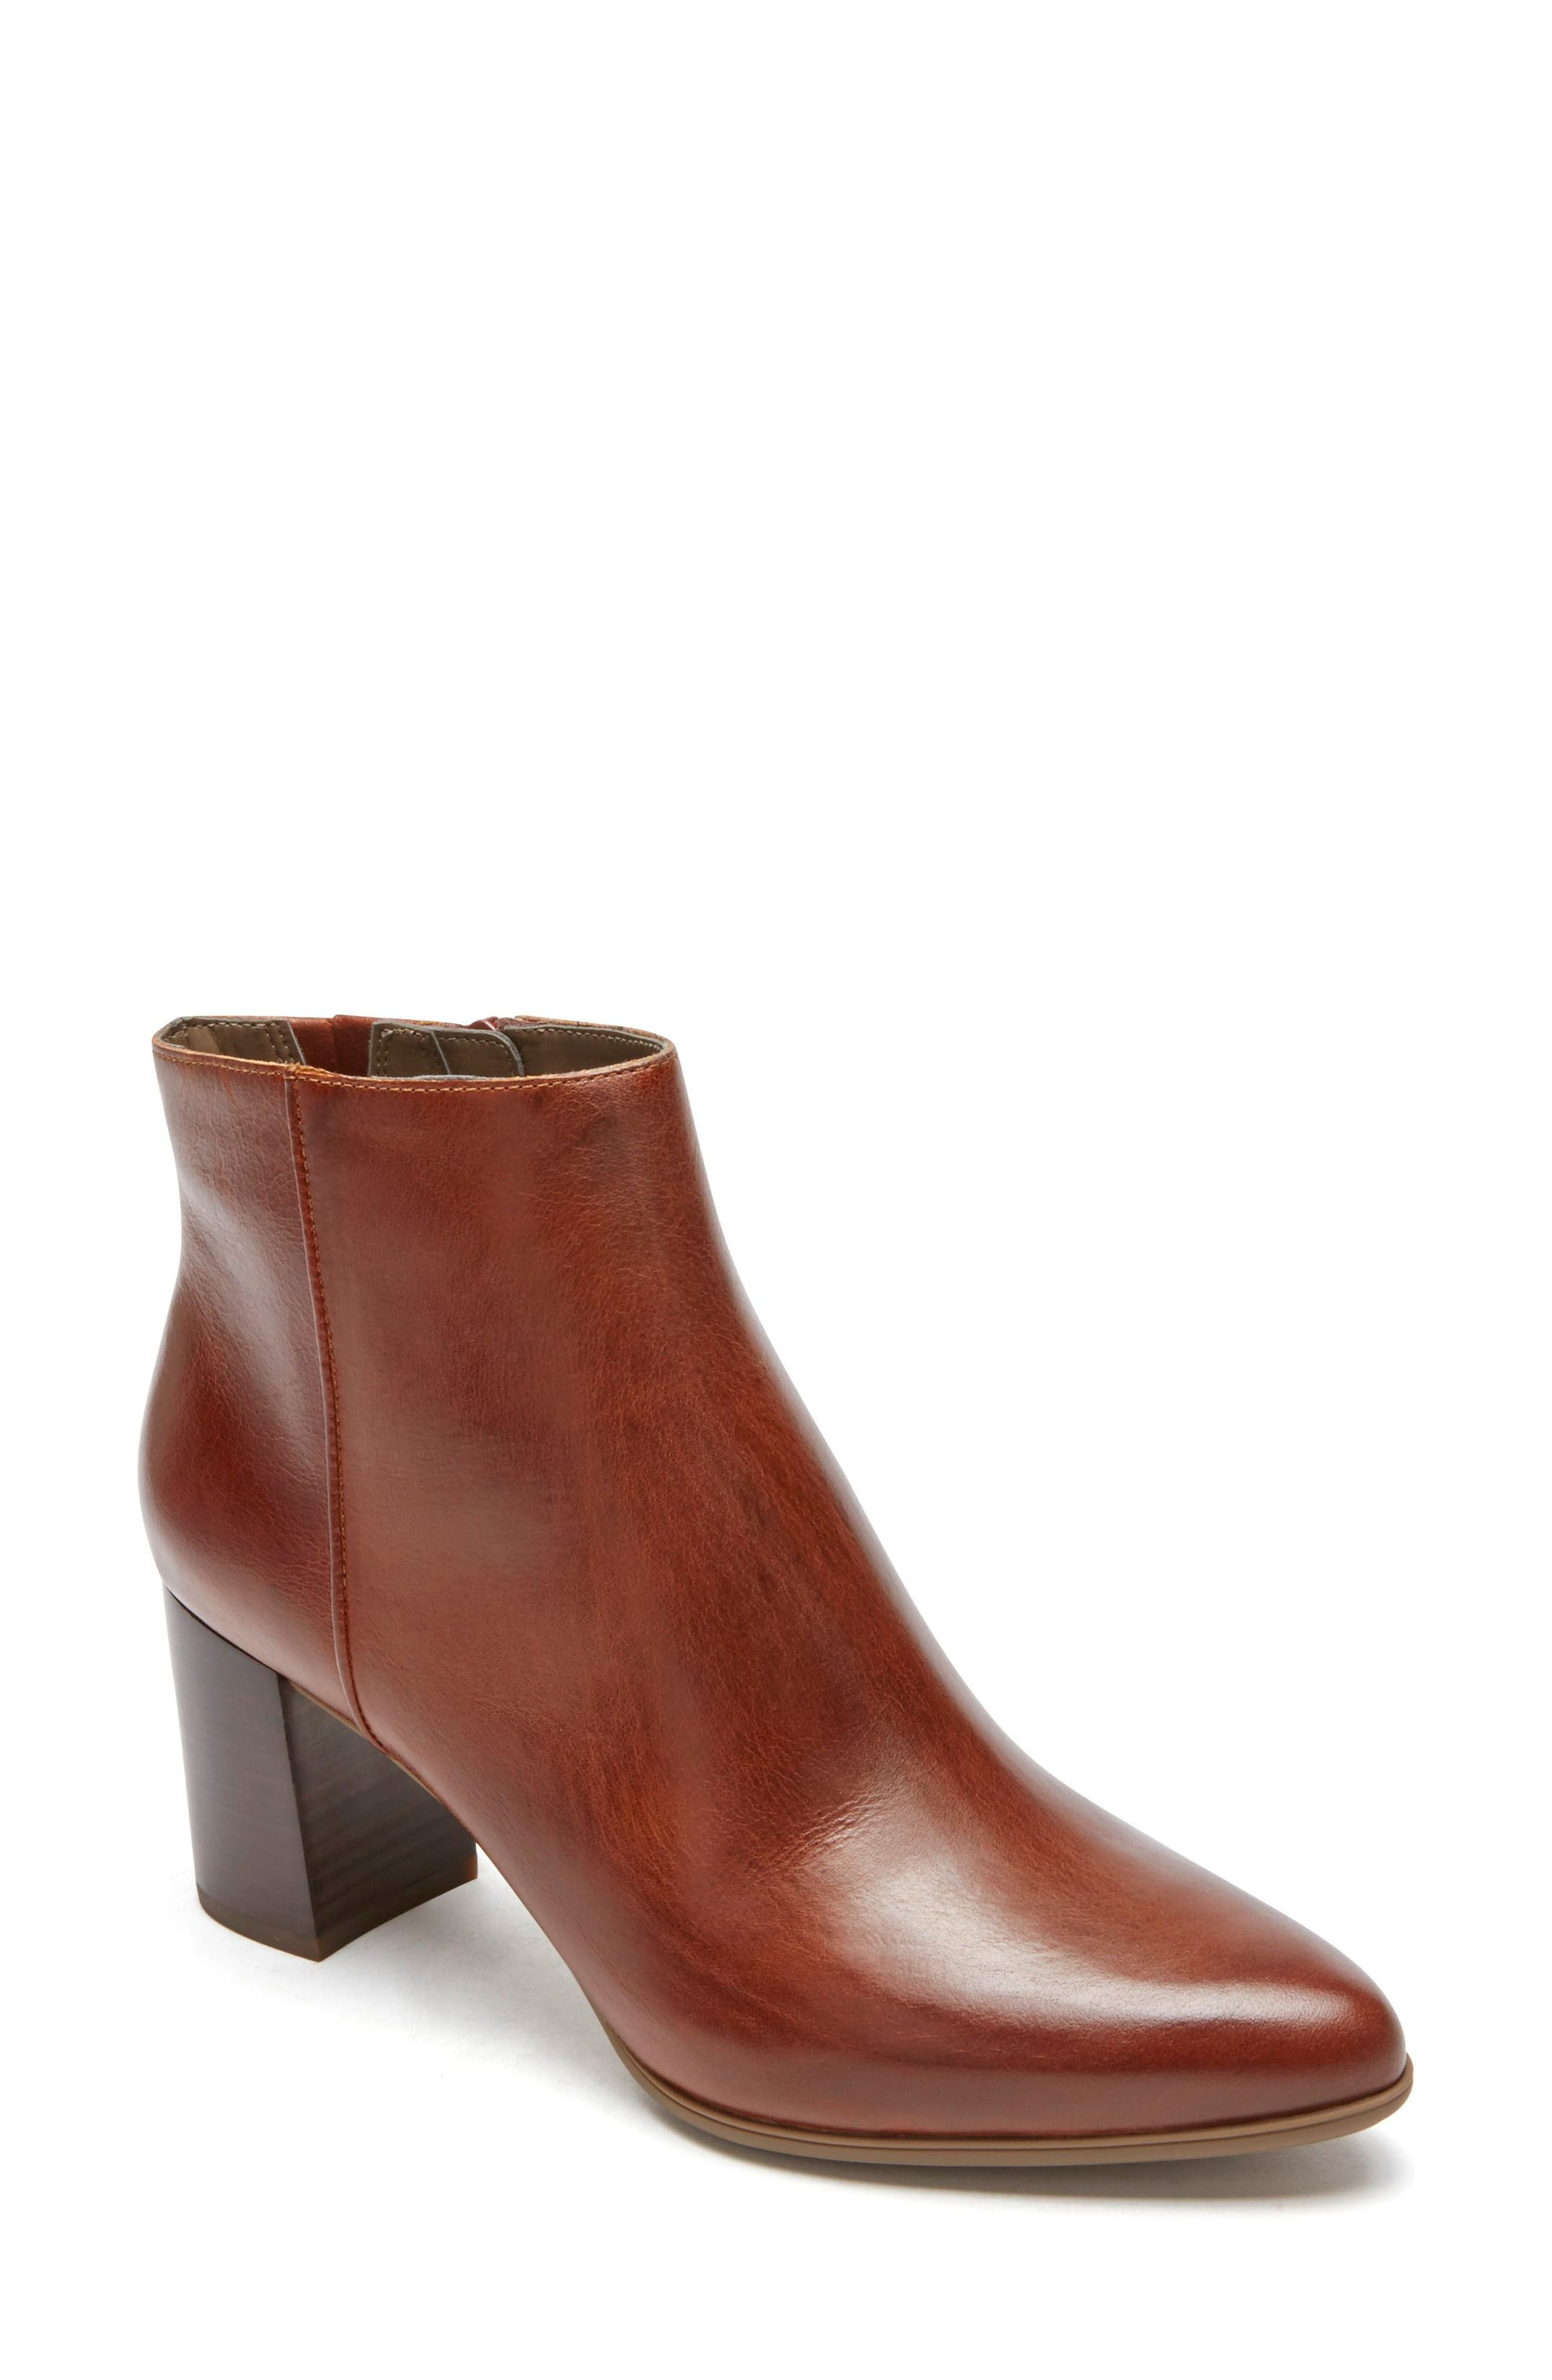 Lynix Luxe Bootie,                         Main,                         color, Saddle Leather